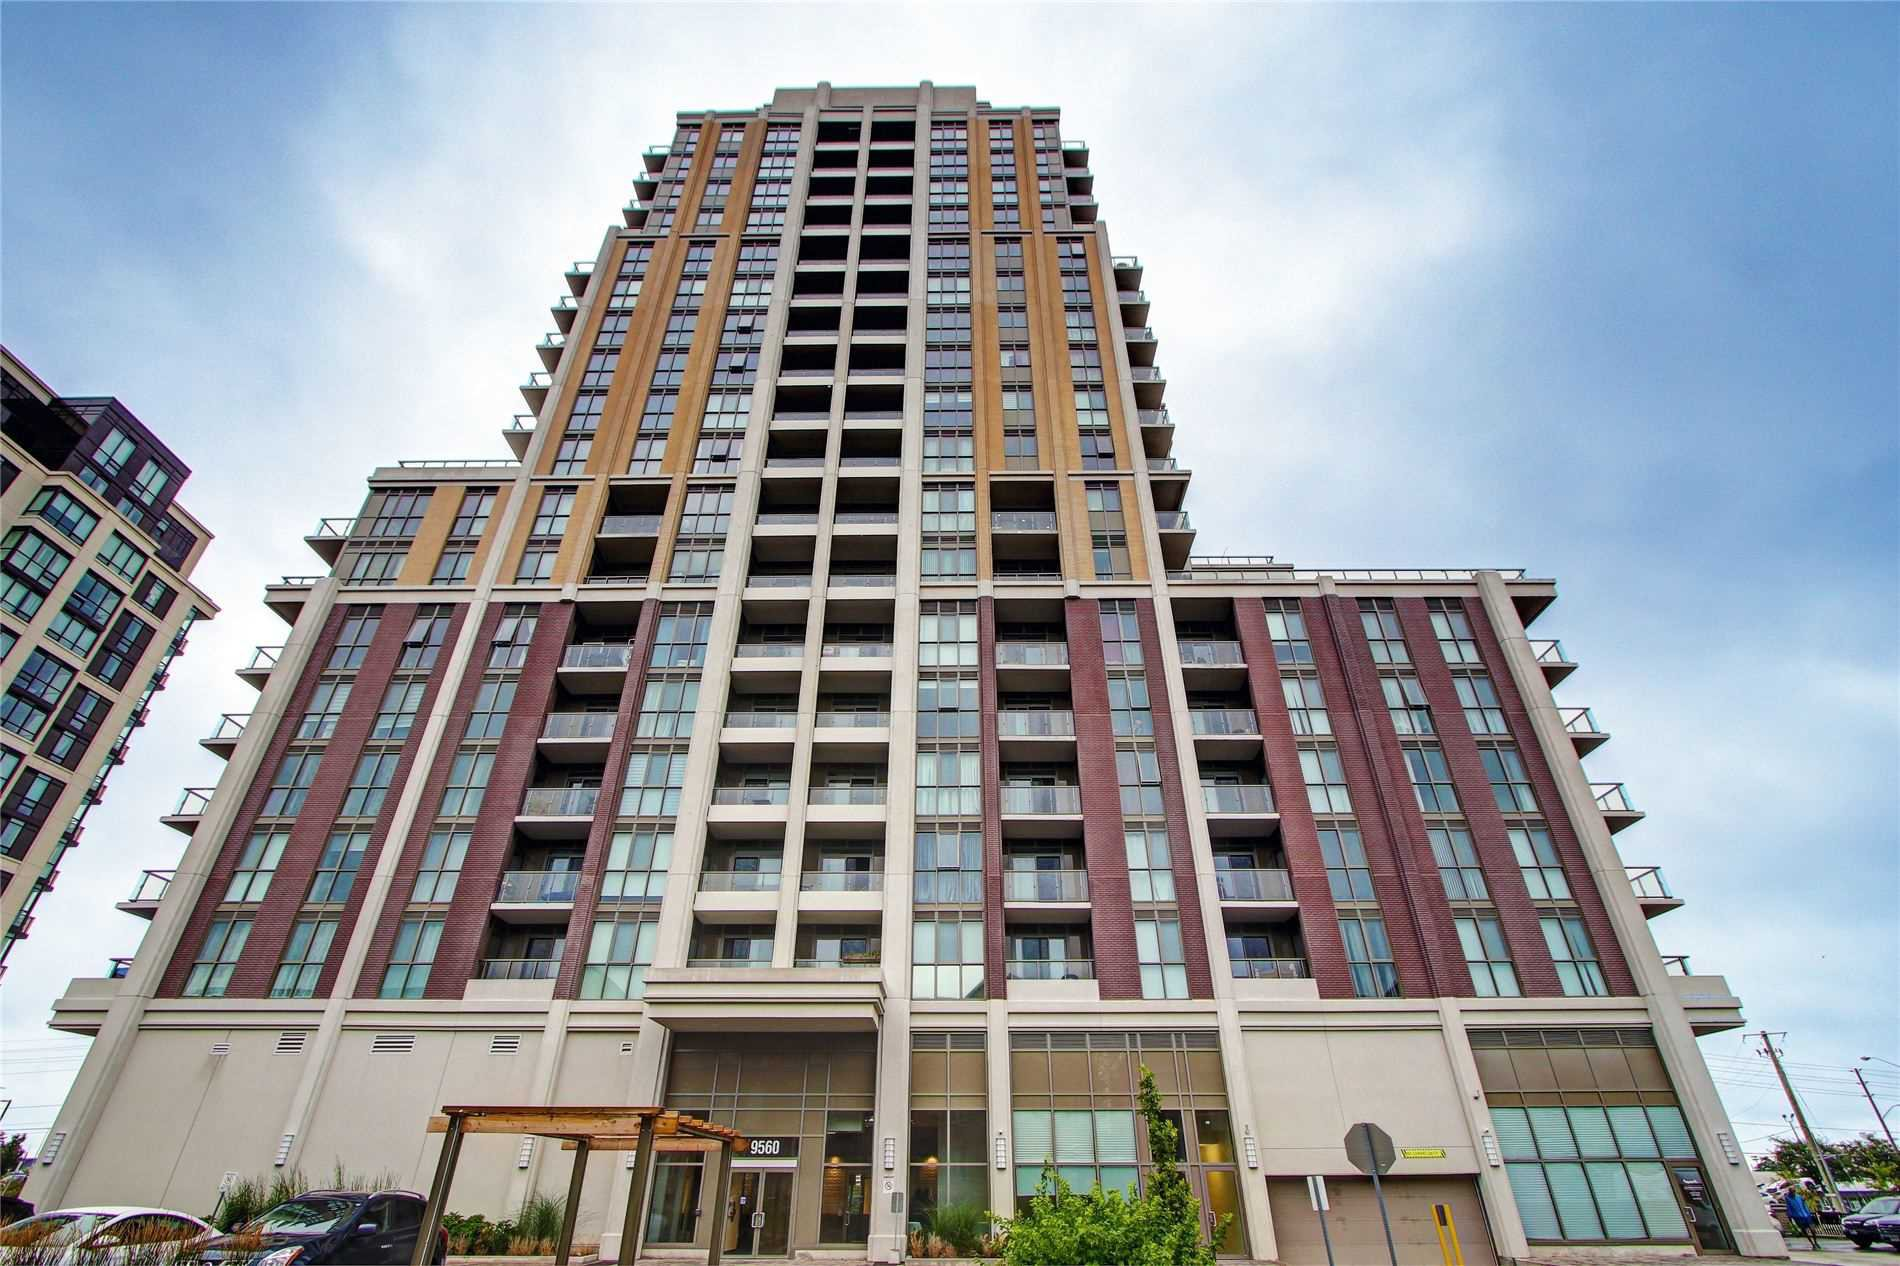 Main Photo: 9560 Markham Rd 702 in Markham: Condo for sale : MLS®# N4716574